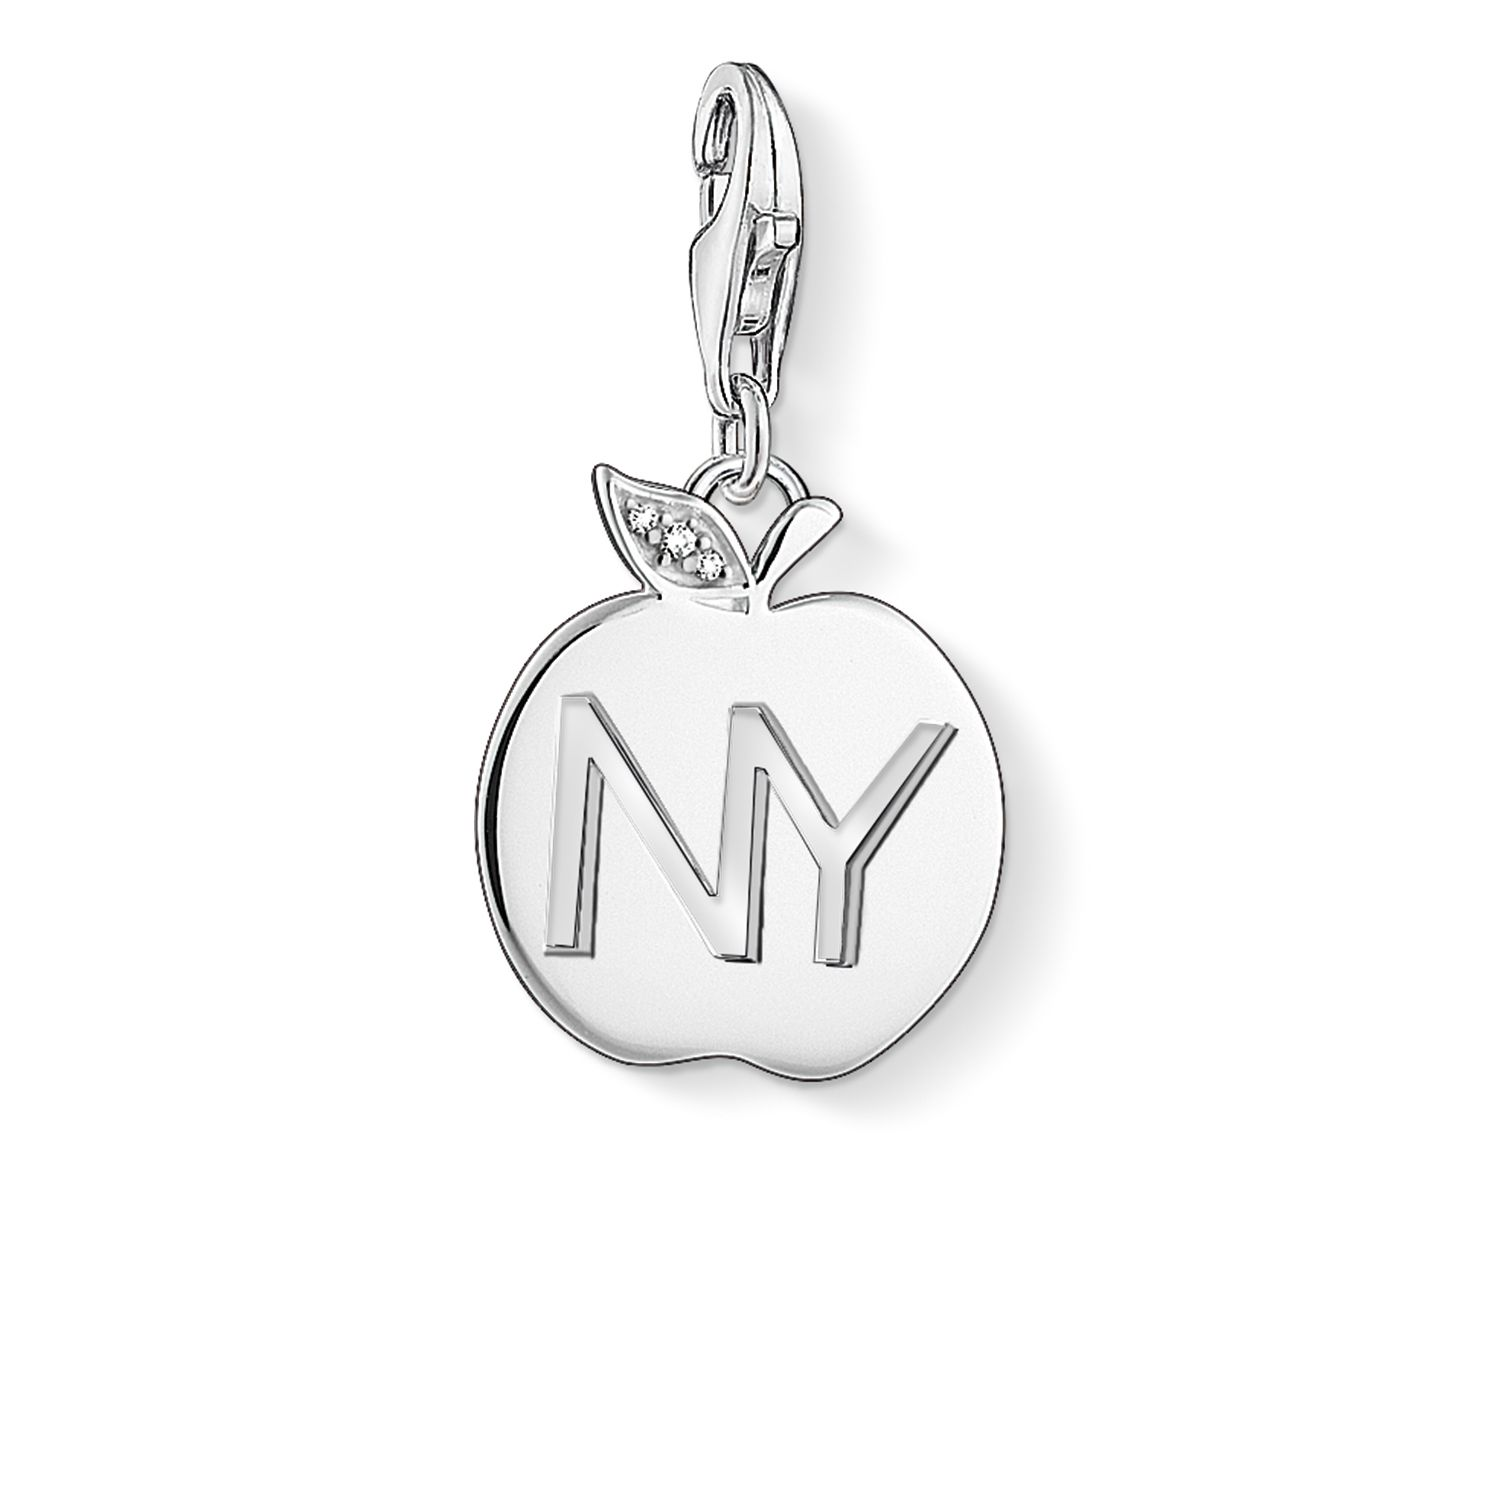 Thomas Sabo Charm club big apple ny charm pendant NA